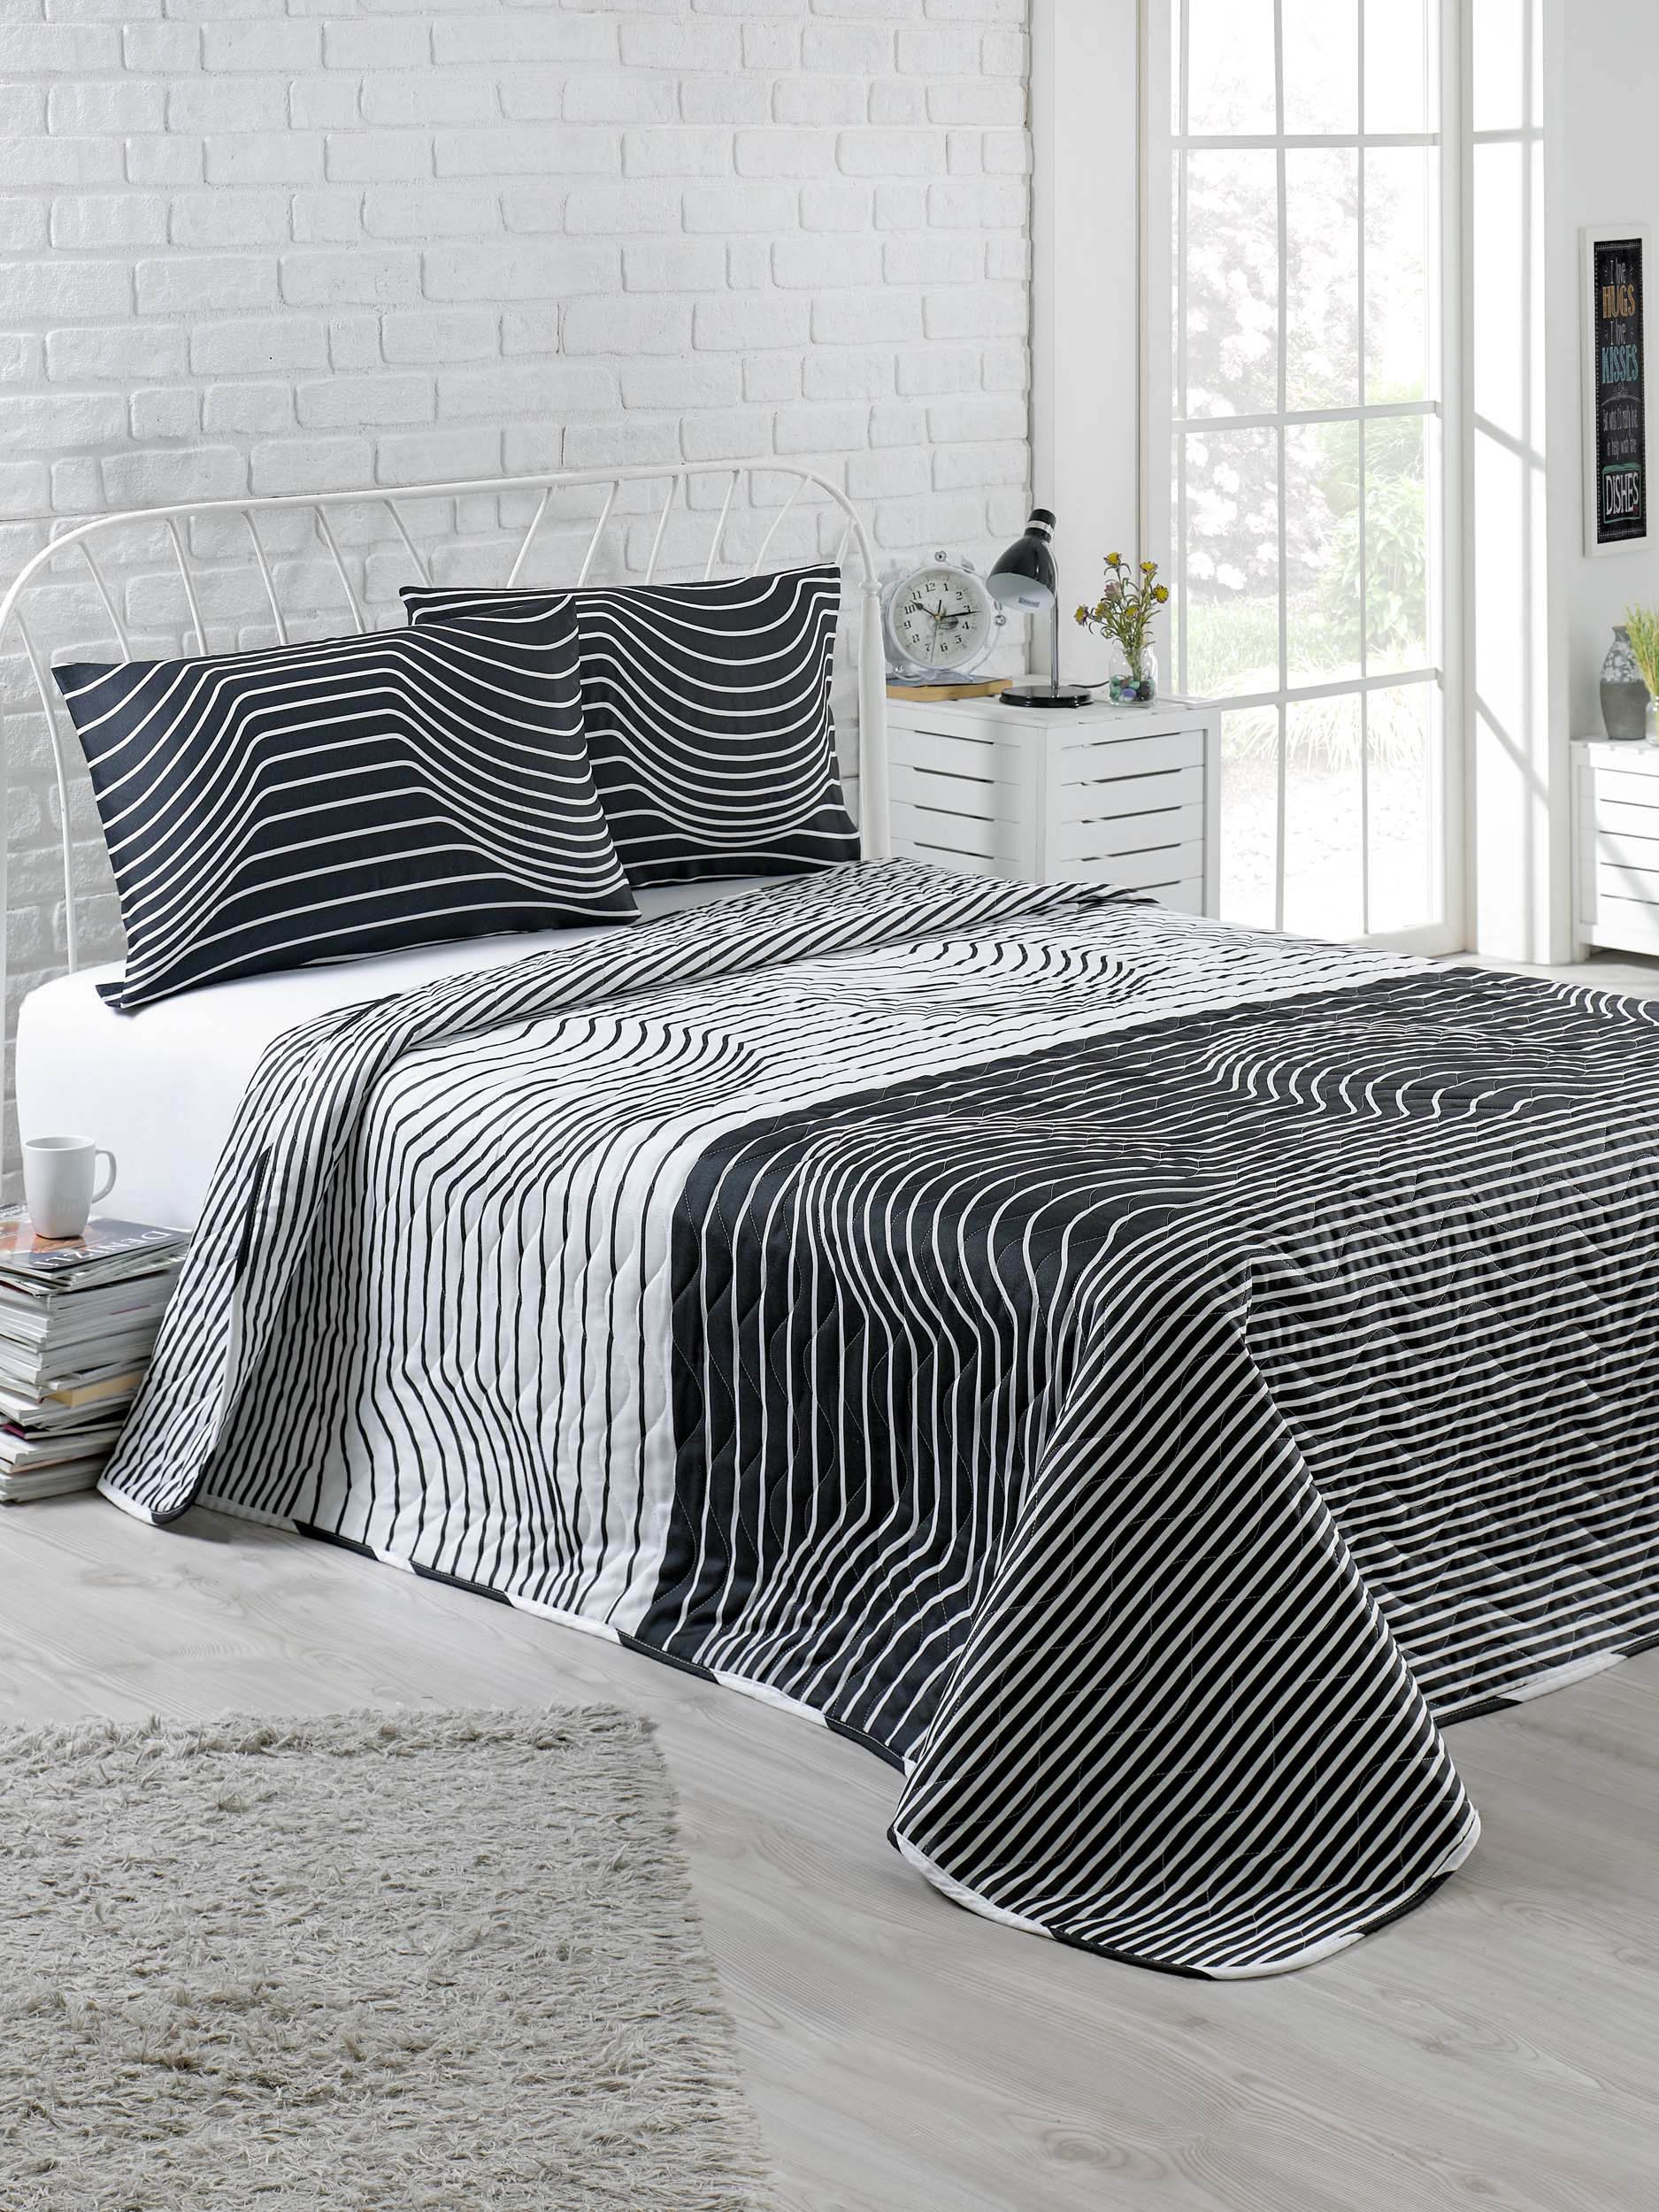 Hypnoses Black and White Bedding, Full/Queen Size Bedspread/Coverlet Set, Kids Bedroom, 3 PCS, by DecoMood